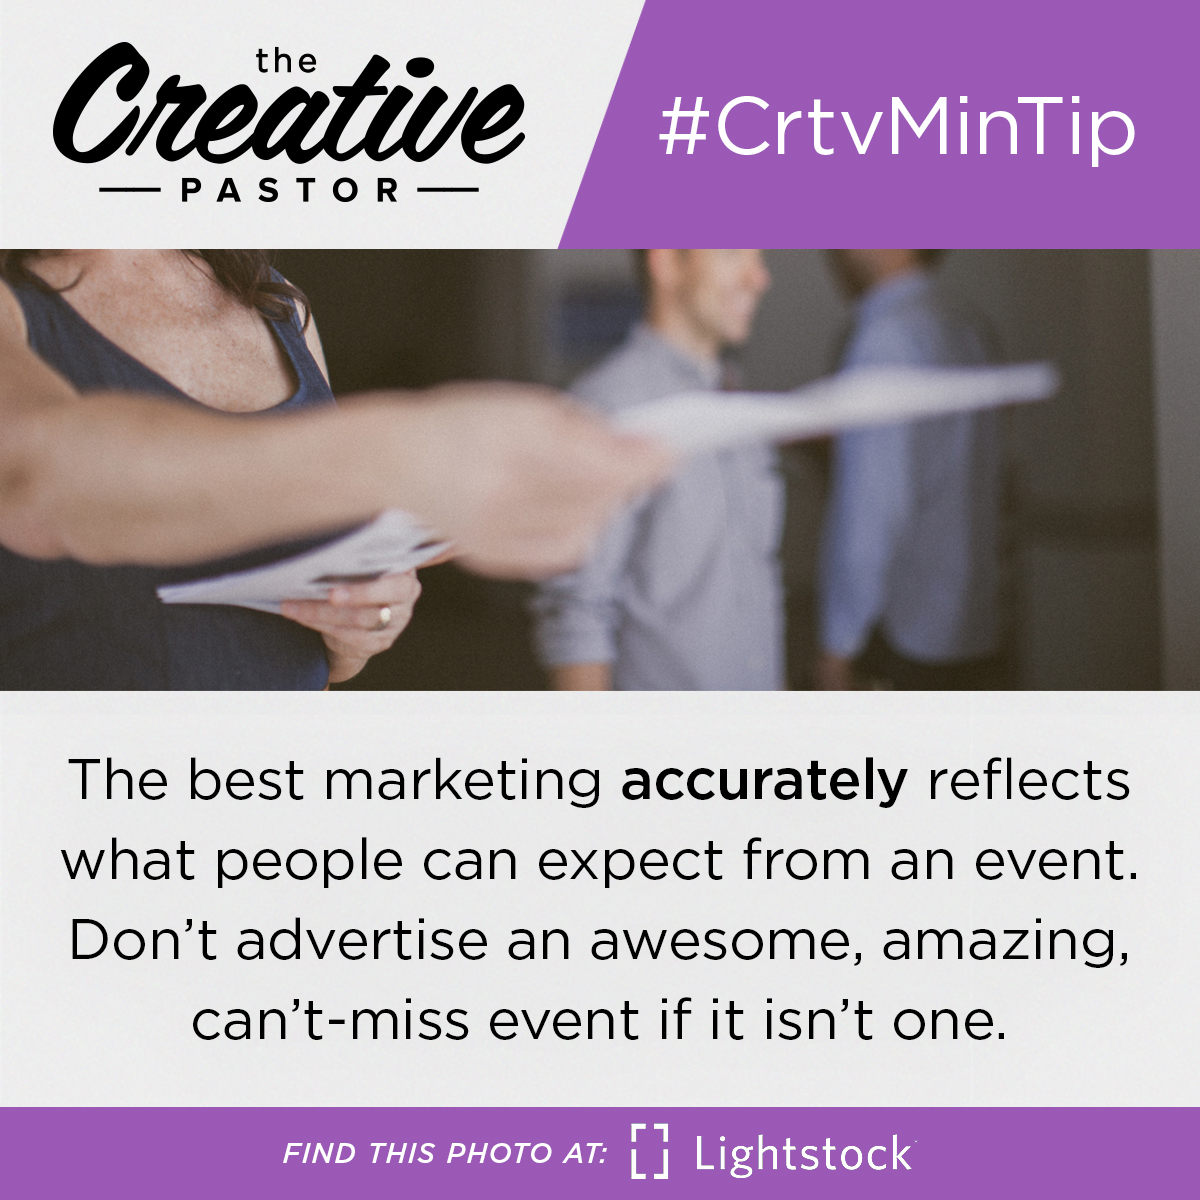 The best marketing accurately reflects what people can expect from an event. Don't advertise an awesome, amazing, can't-miss event if it isn't one.